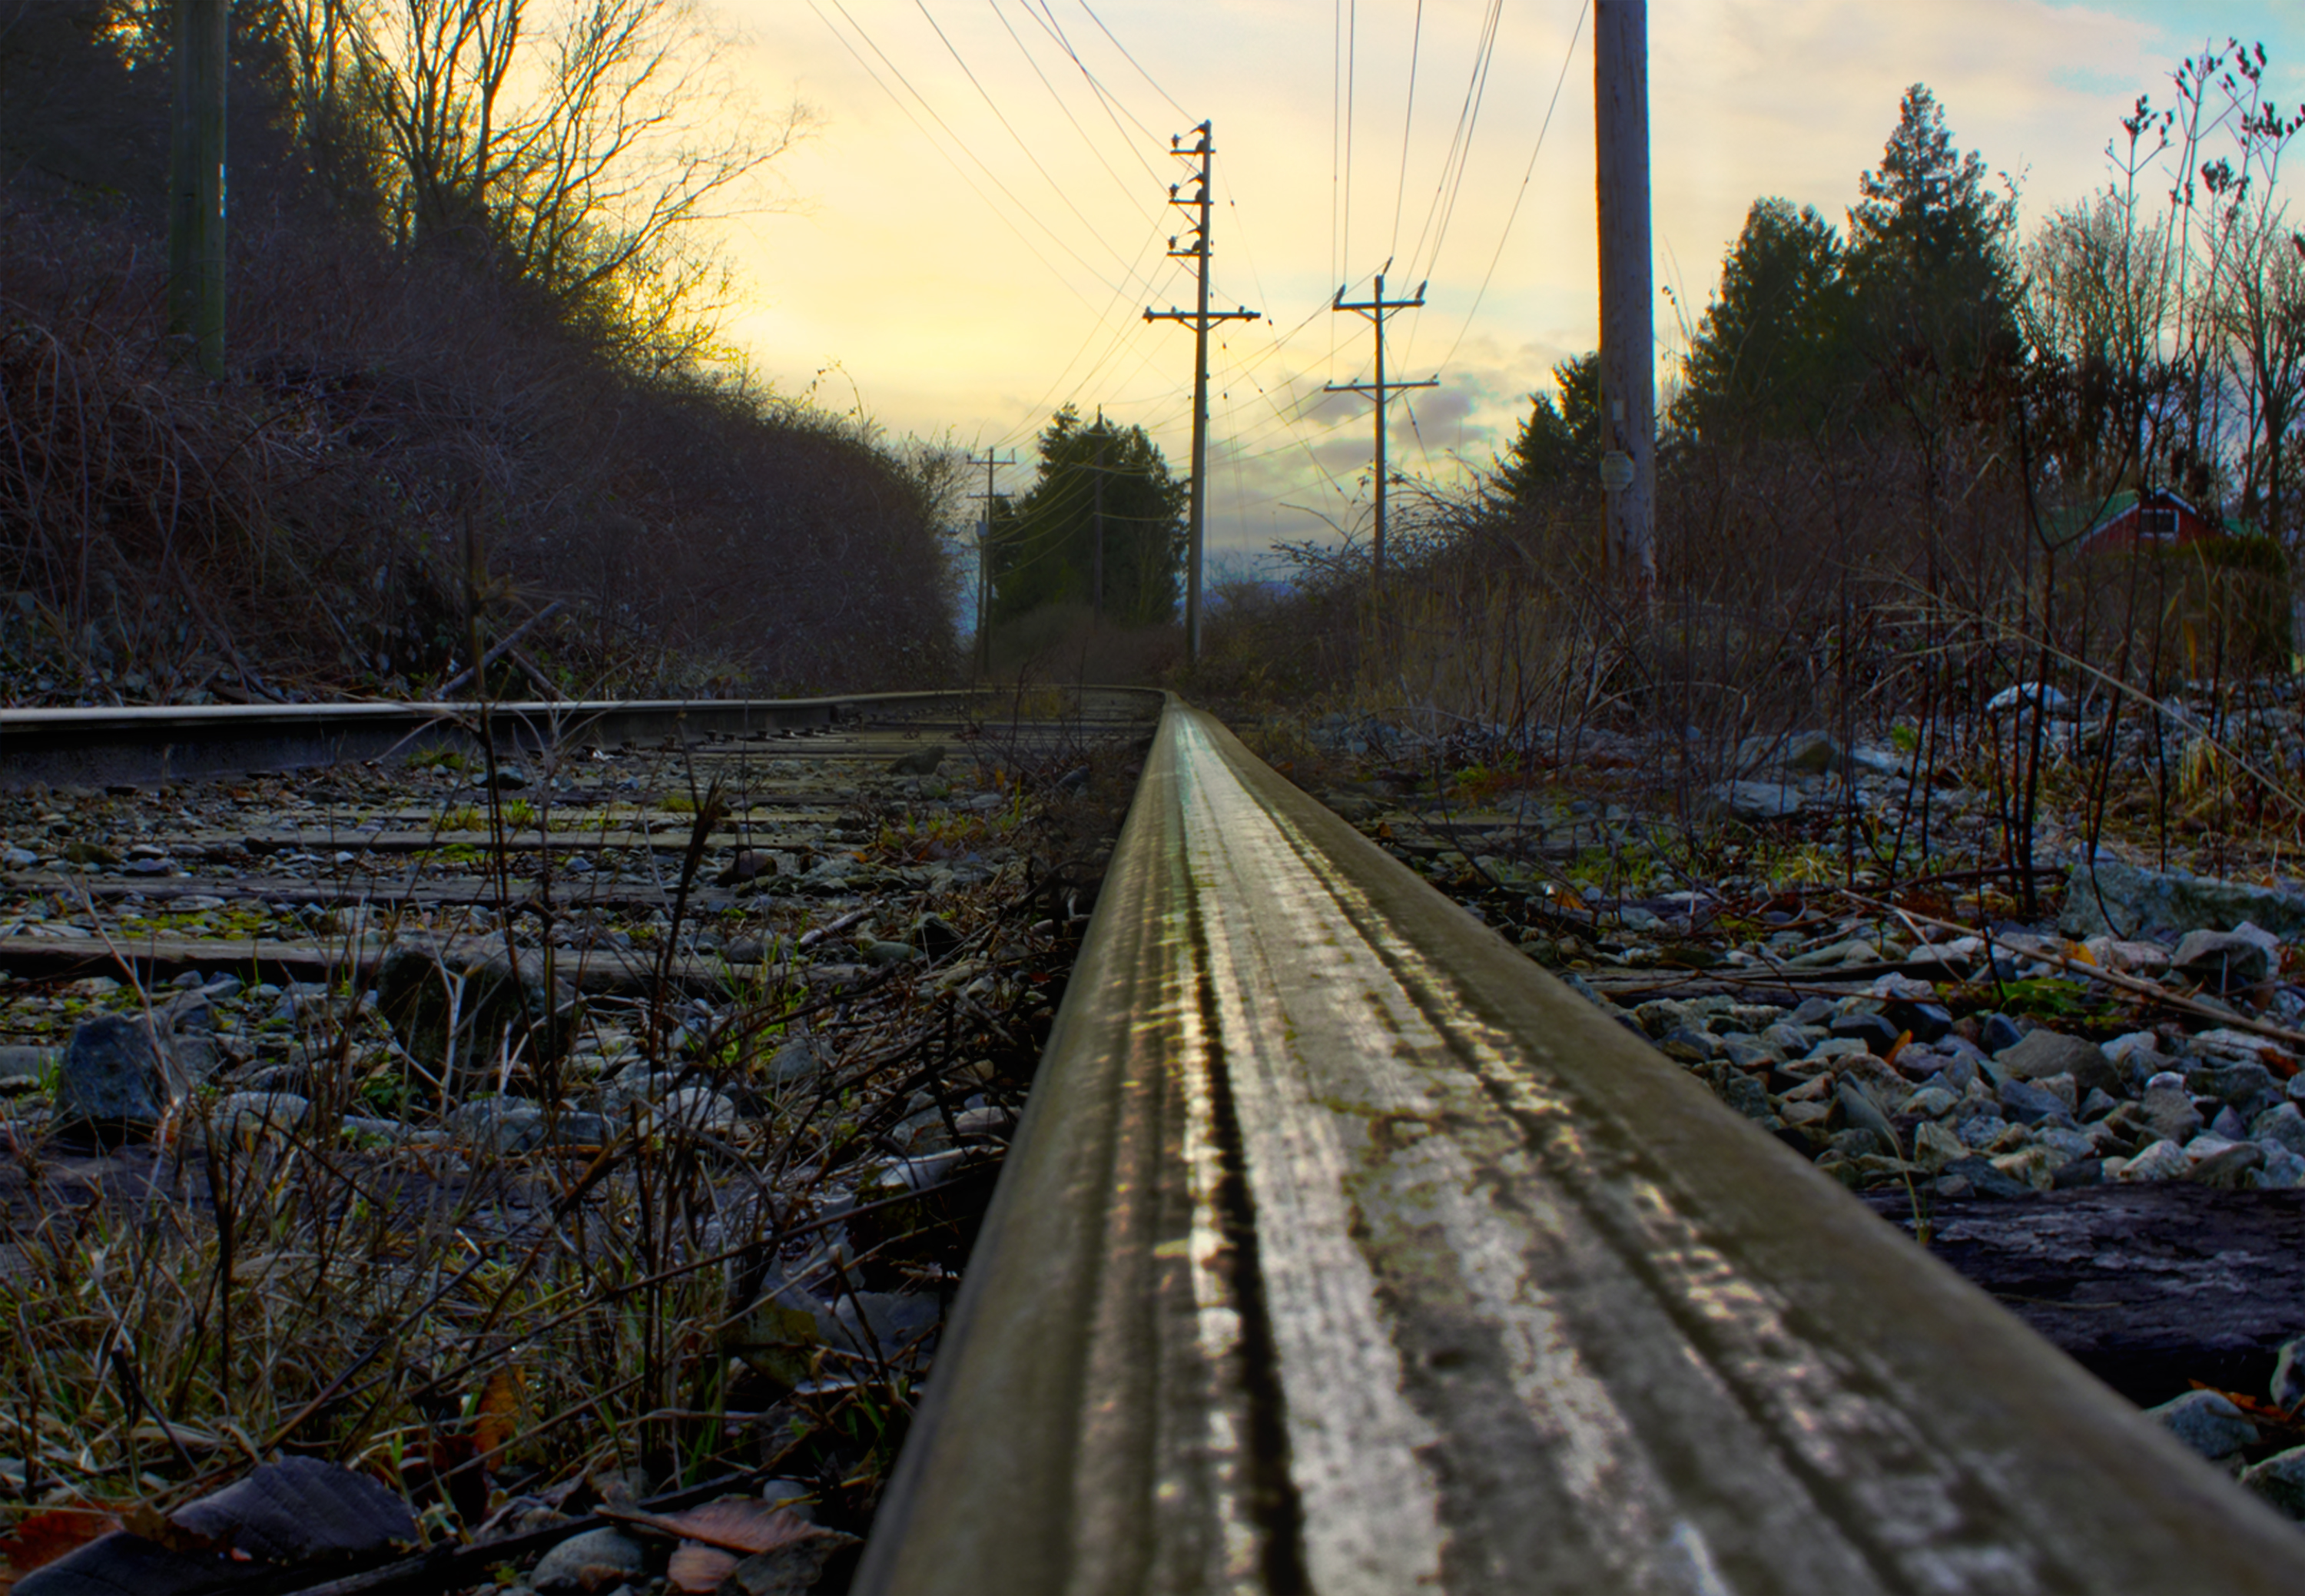 Stay On Track by TheArtOfaMadMan